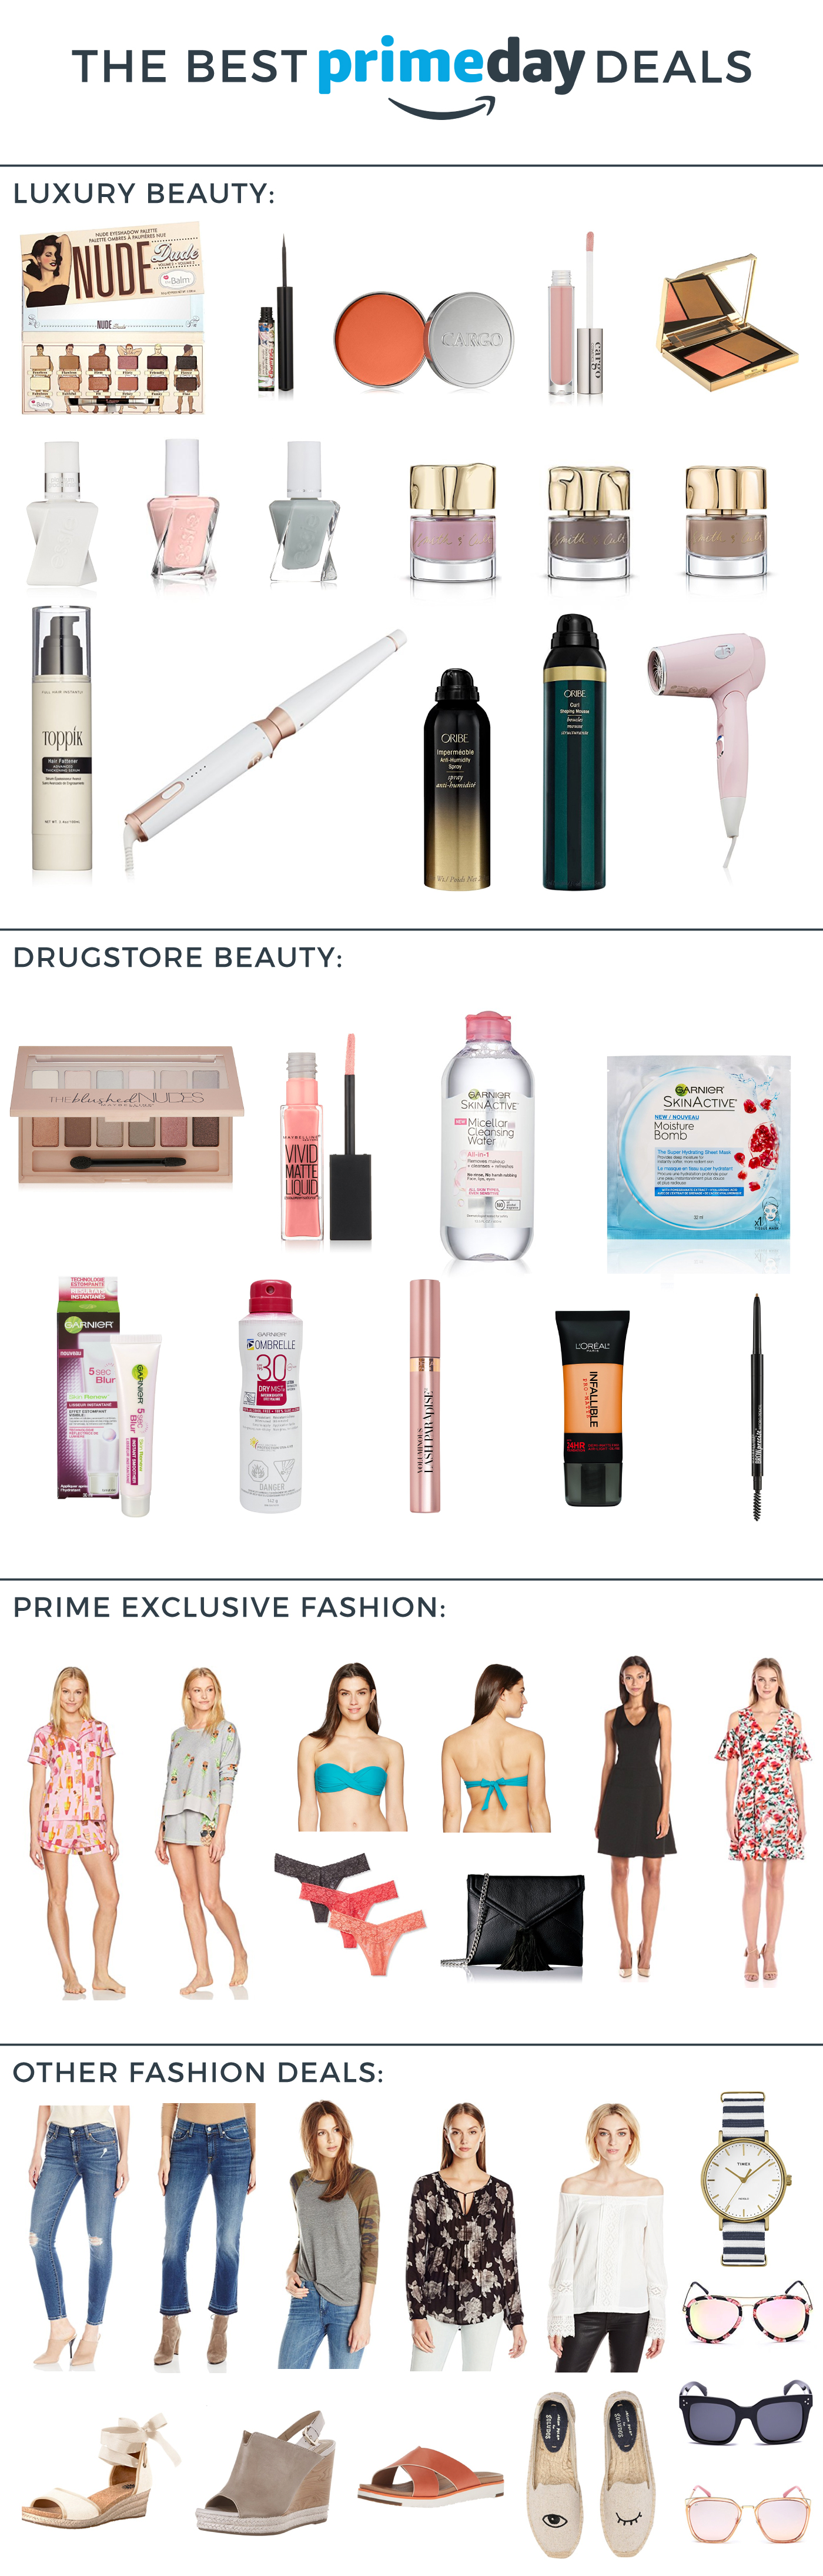 Canadian fashion and lifestyle blogger, Jackie Goldhar, shares her best Amazon Prime Day Deals for 2017 in fashion and beauty